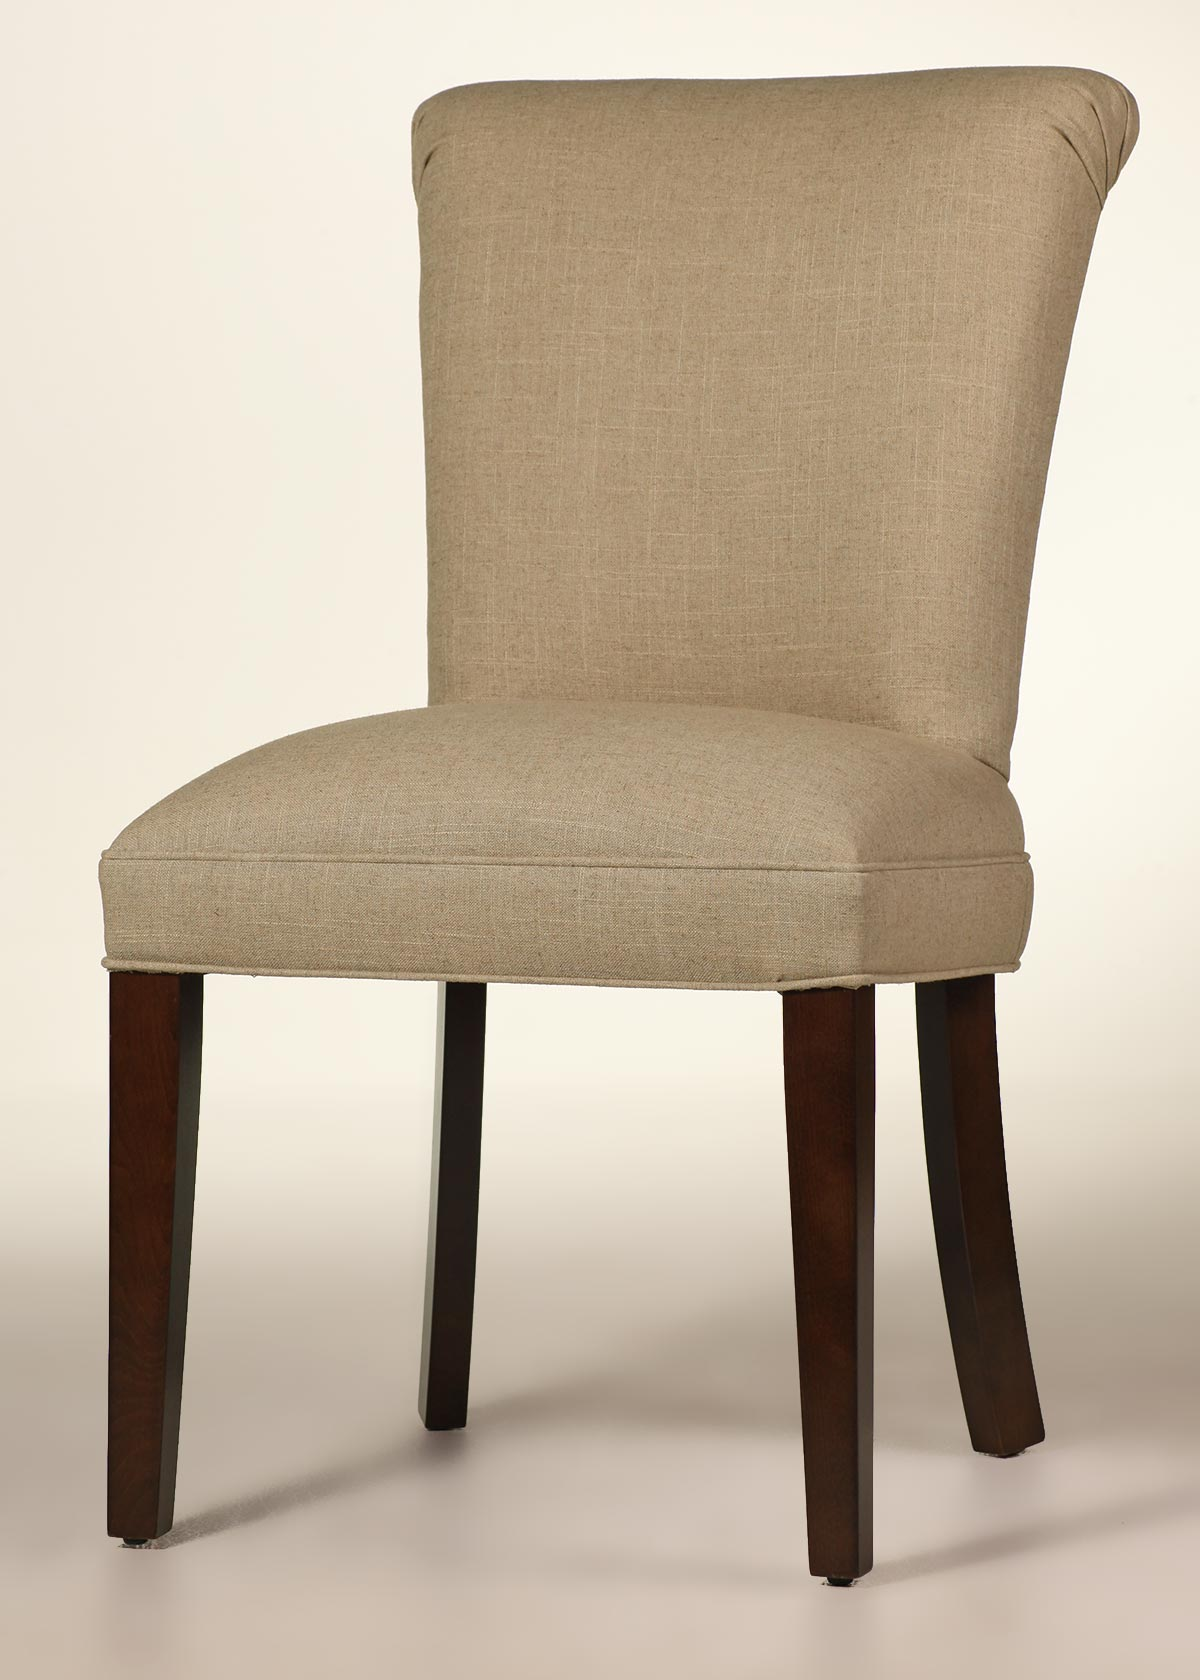 Curved Back Dining Chair  Customize Fabric  Finish  Buy